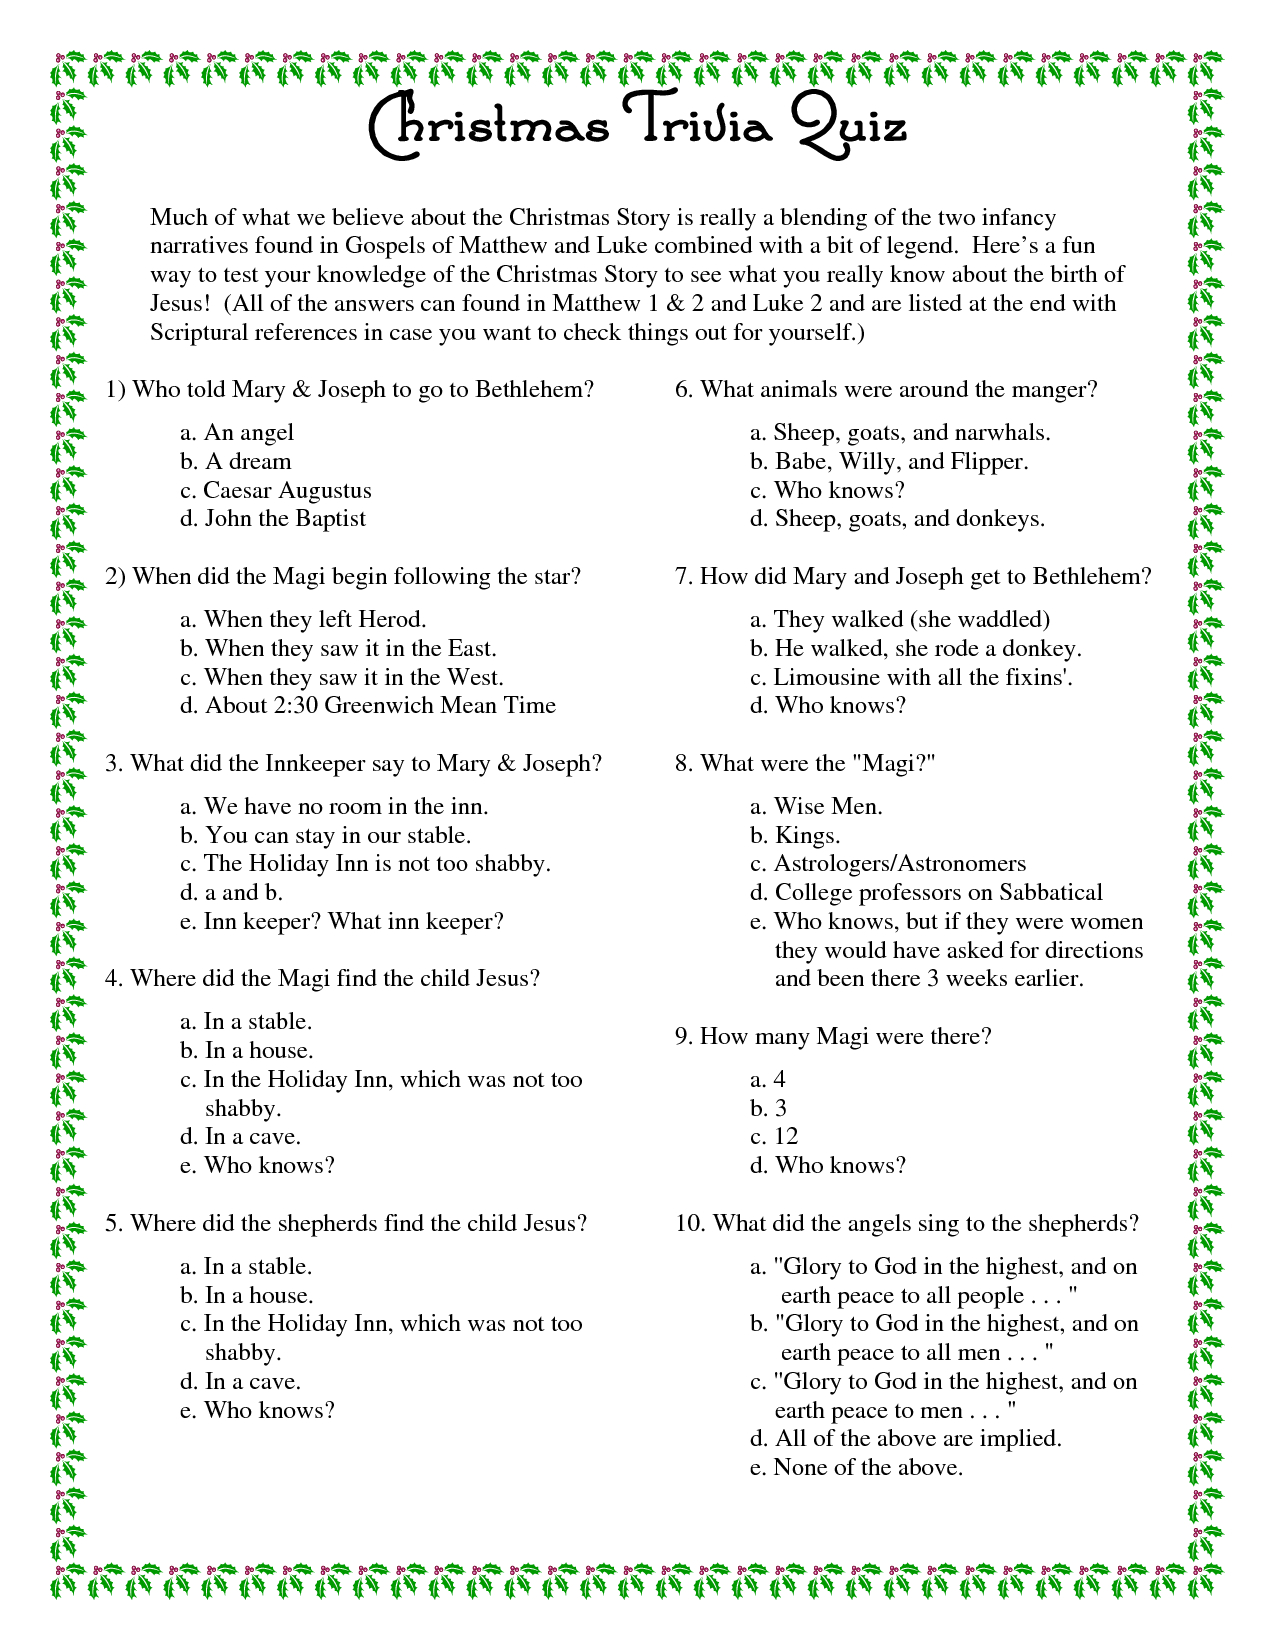 Printable+Christmas+Trivia+Questions+And+Answers | Christmas - Free Bible Questions And Answers Printable